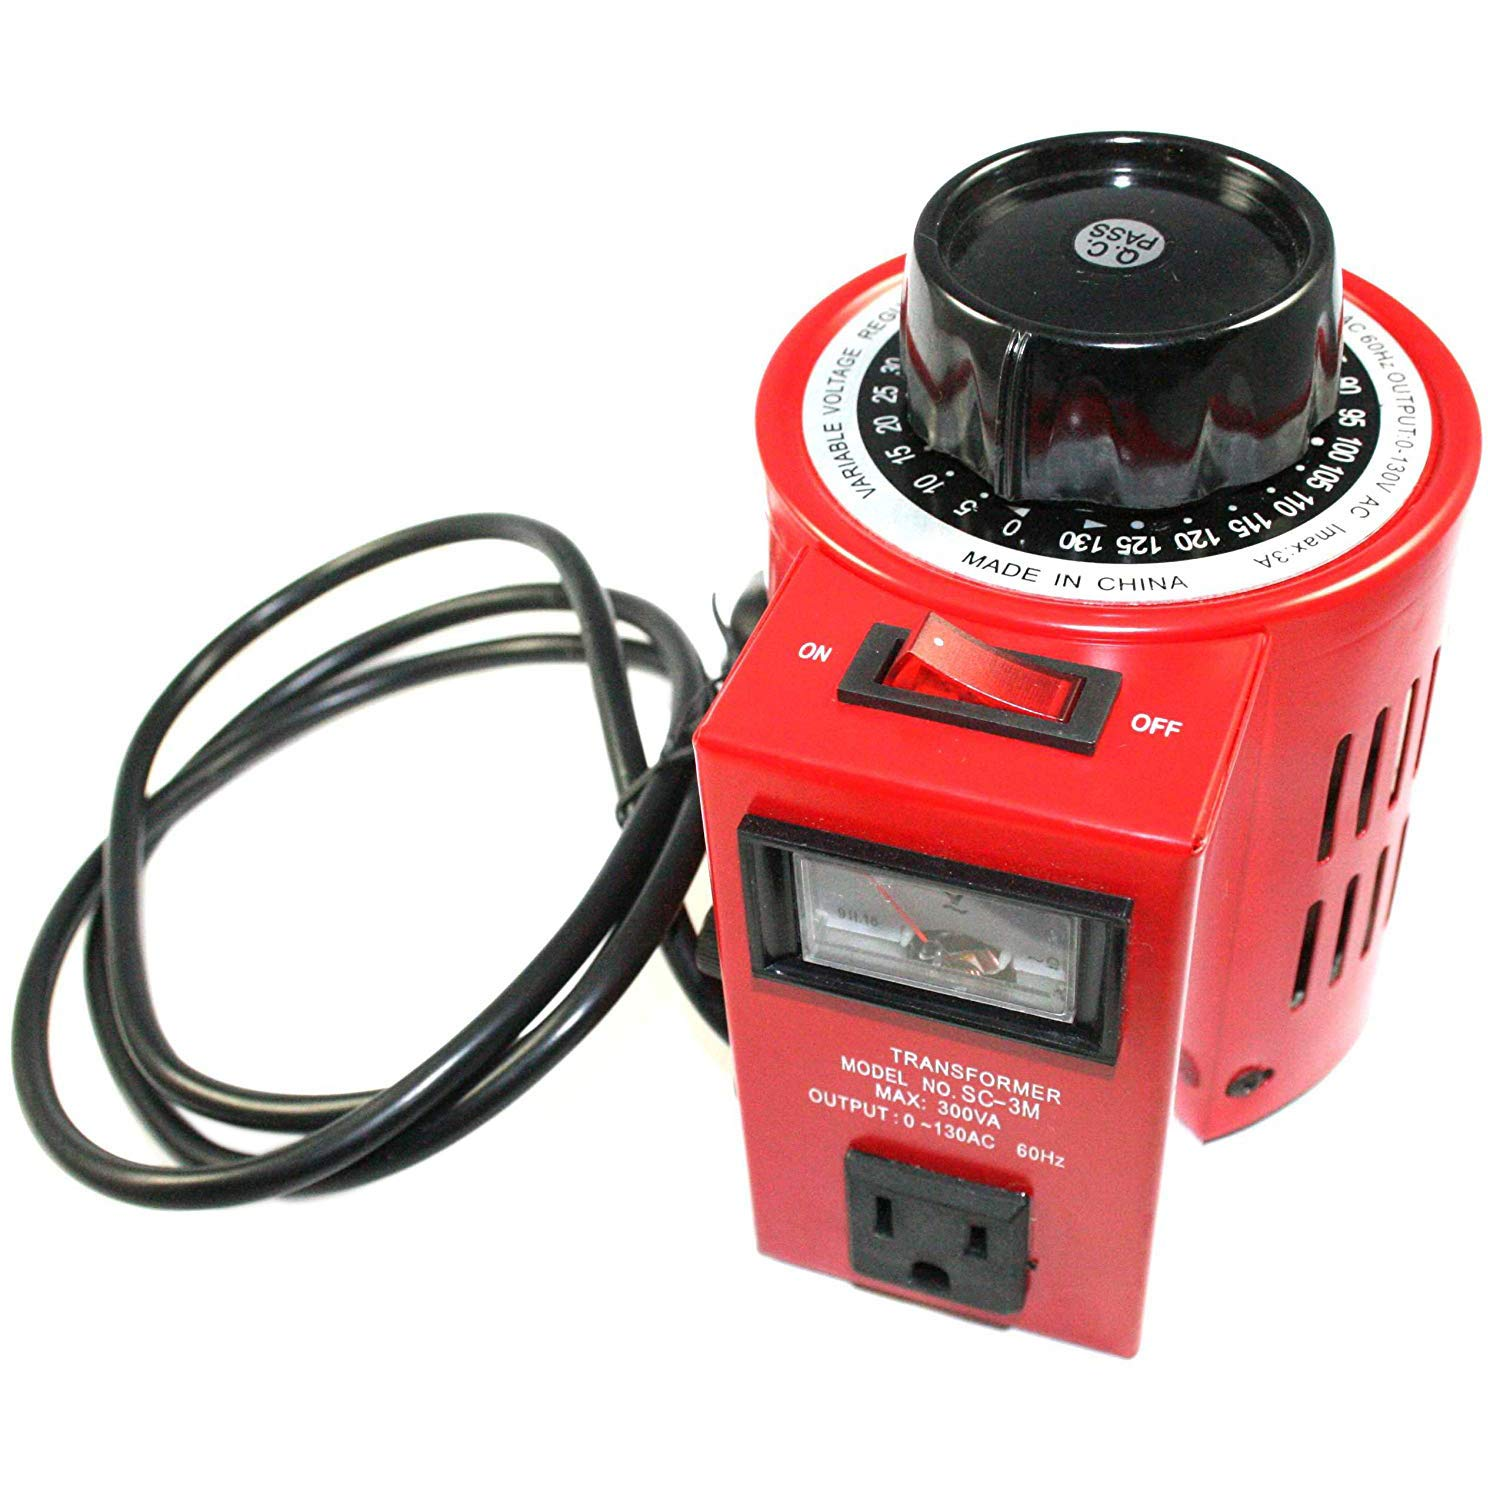 EX ELECTRONIX EXPRESS Variable Transformer, 300 VAC Max, 0-130V Output, 3 Amp by Electronix Express